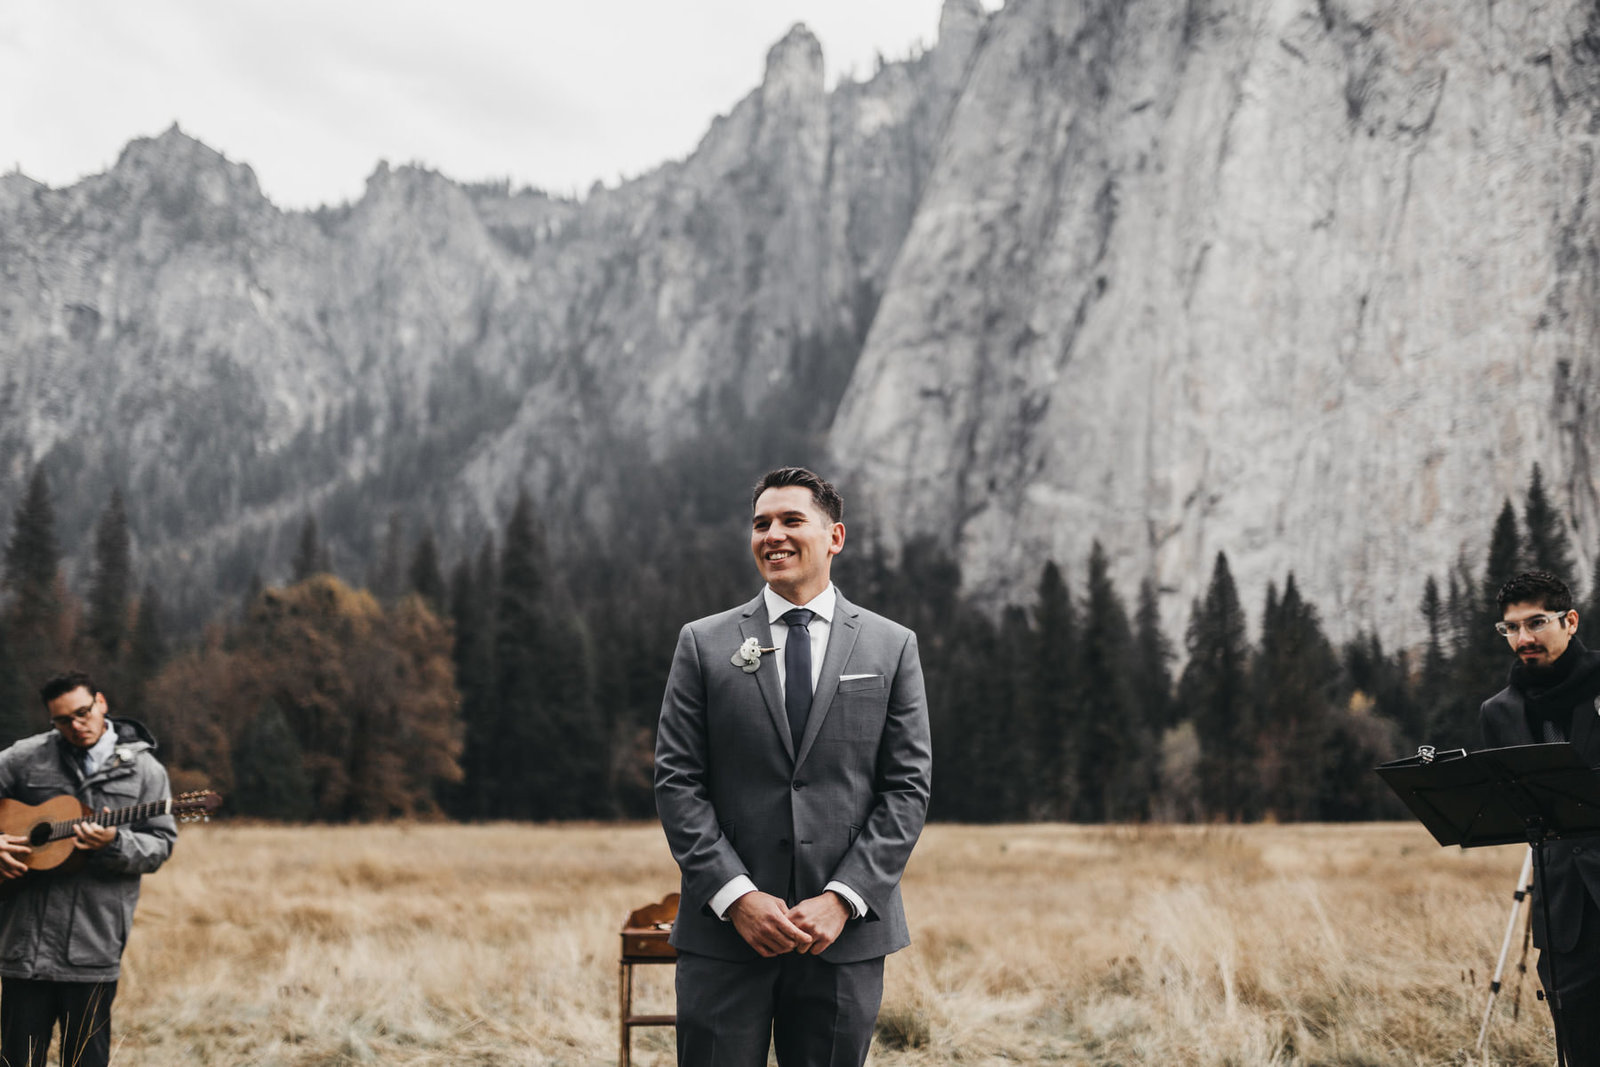 athena-and-camron-yosemite-elopement-wedding-photographer-elegent-valley-wedding13